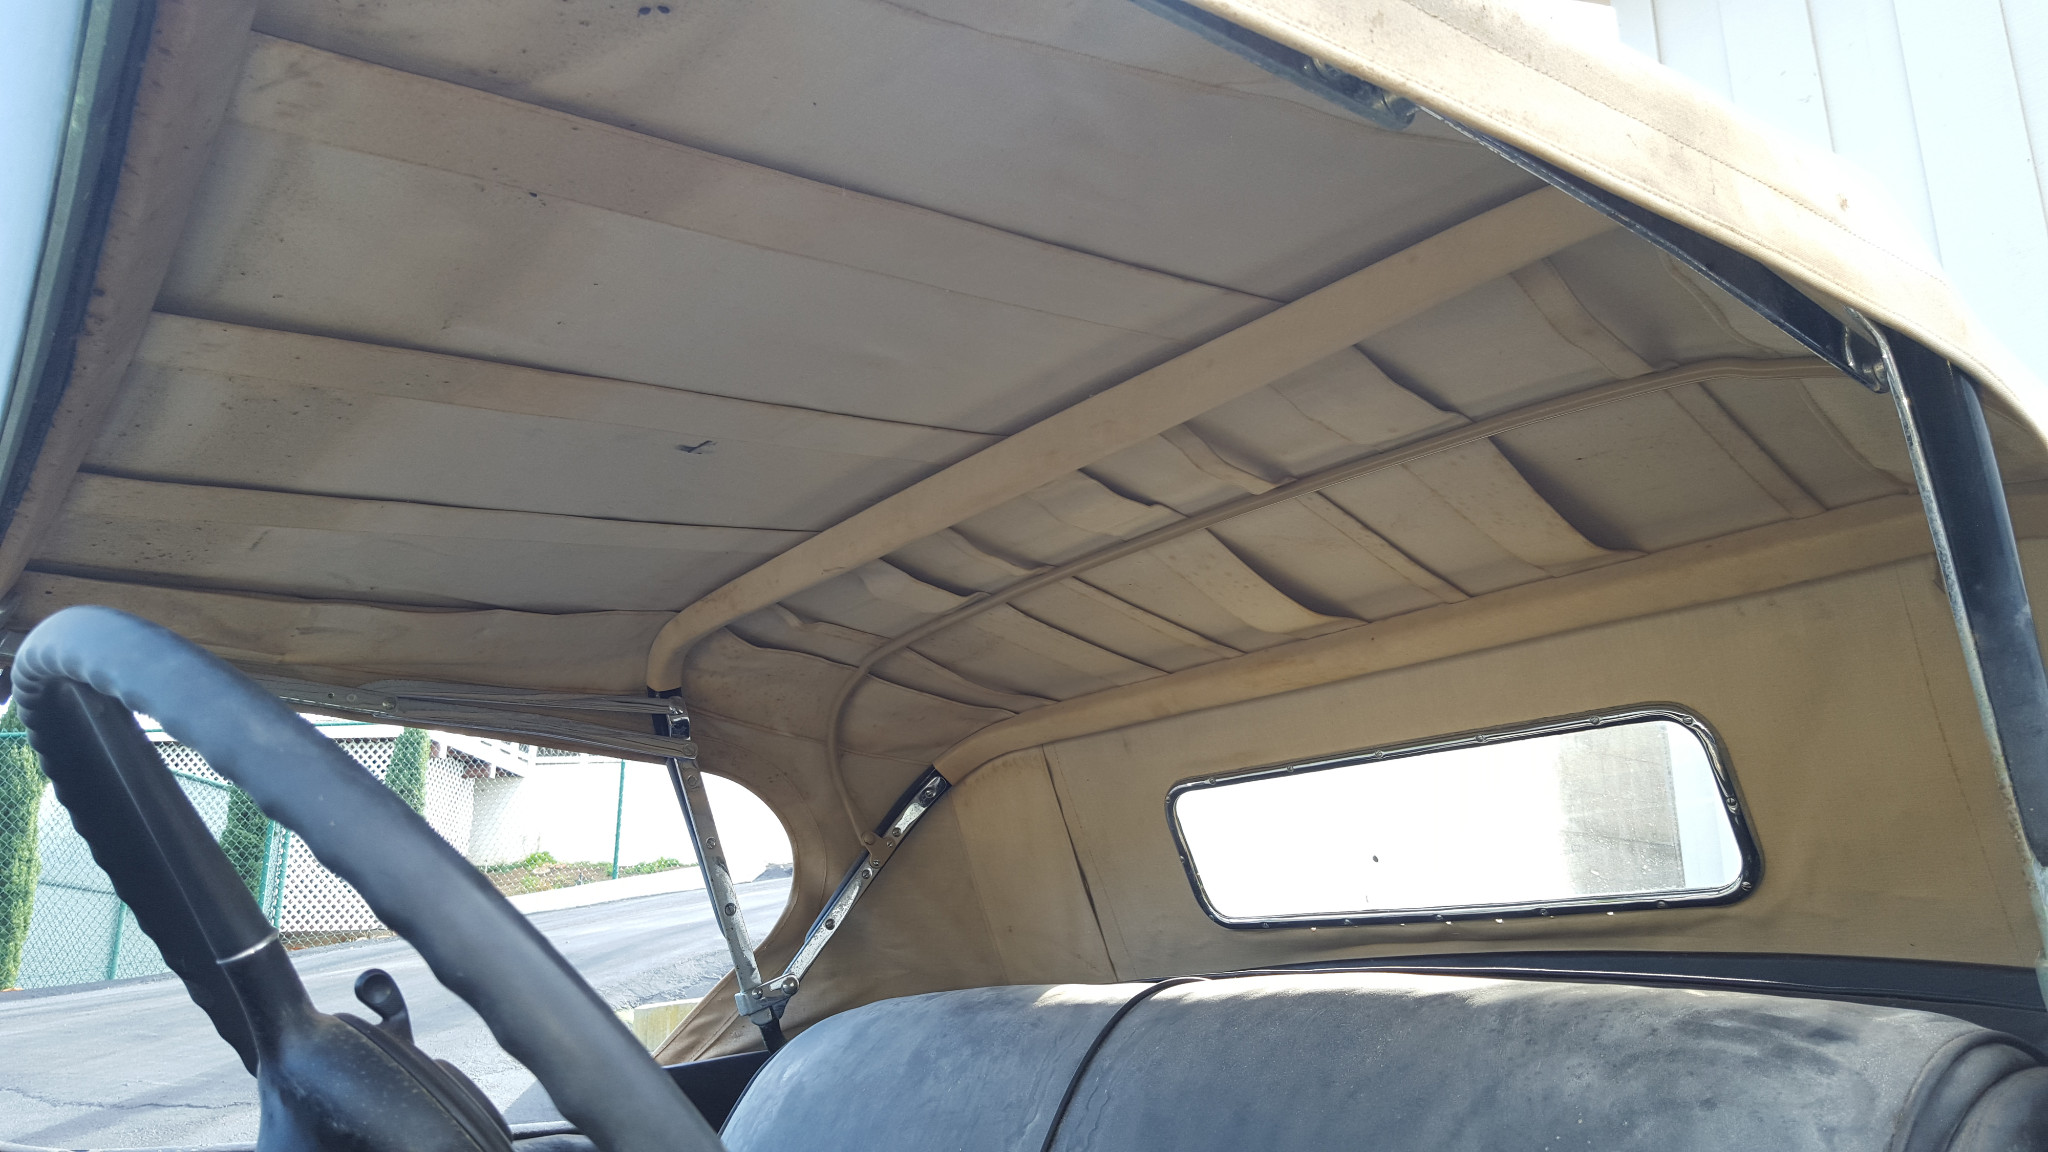 Interior of the convertible's roof cover is in good shape so the whole cover can be used as a pattern to create a new cover. (Picture courtesy bringatrailer.com).